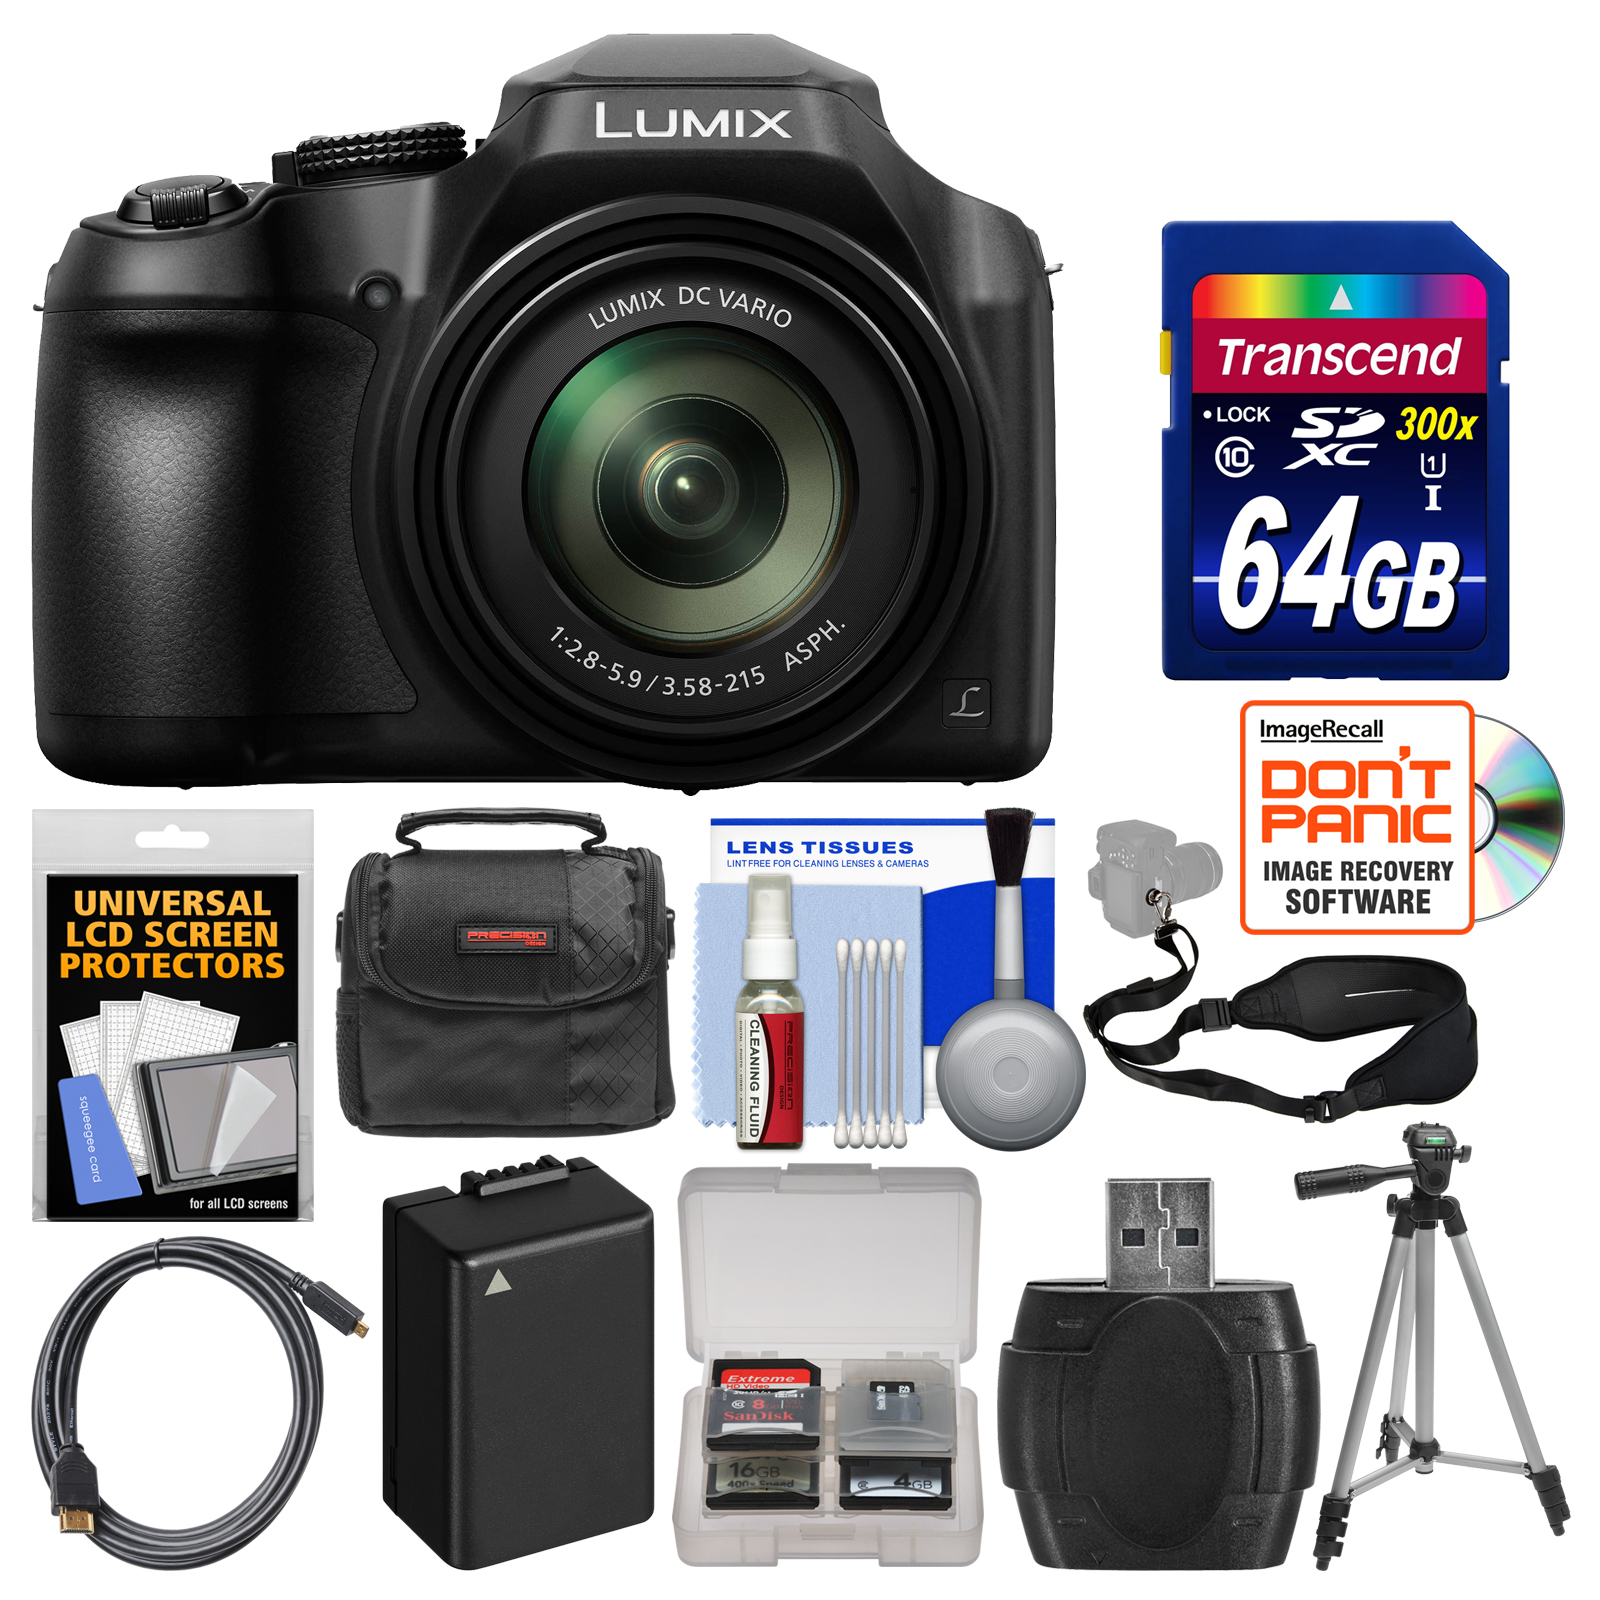 Panasonic Lumix DC-FZ80 4K Wi-Fi Digital Camera with 64GB Card + Case + Battery + Tripod + Sling Strap + Kit